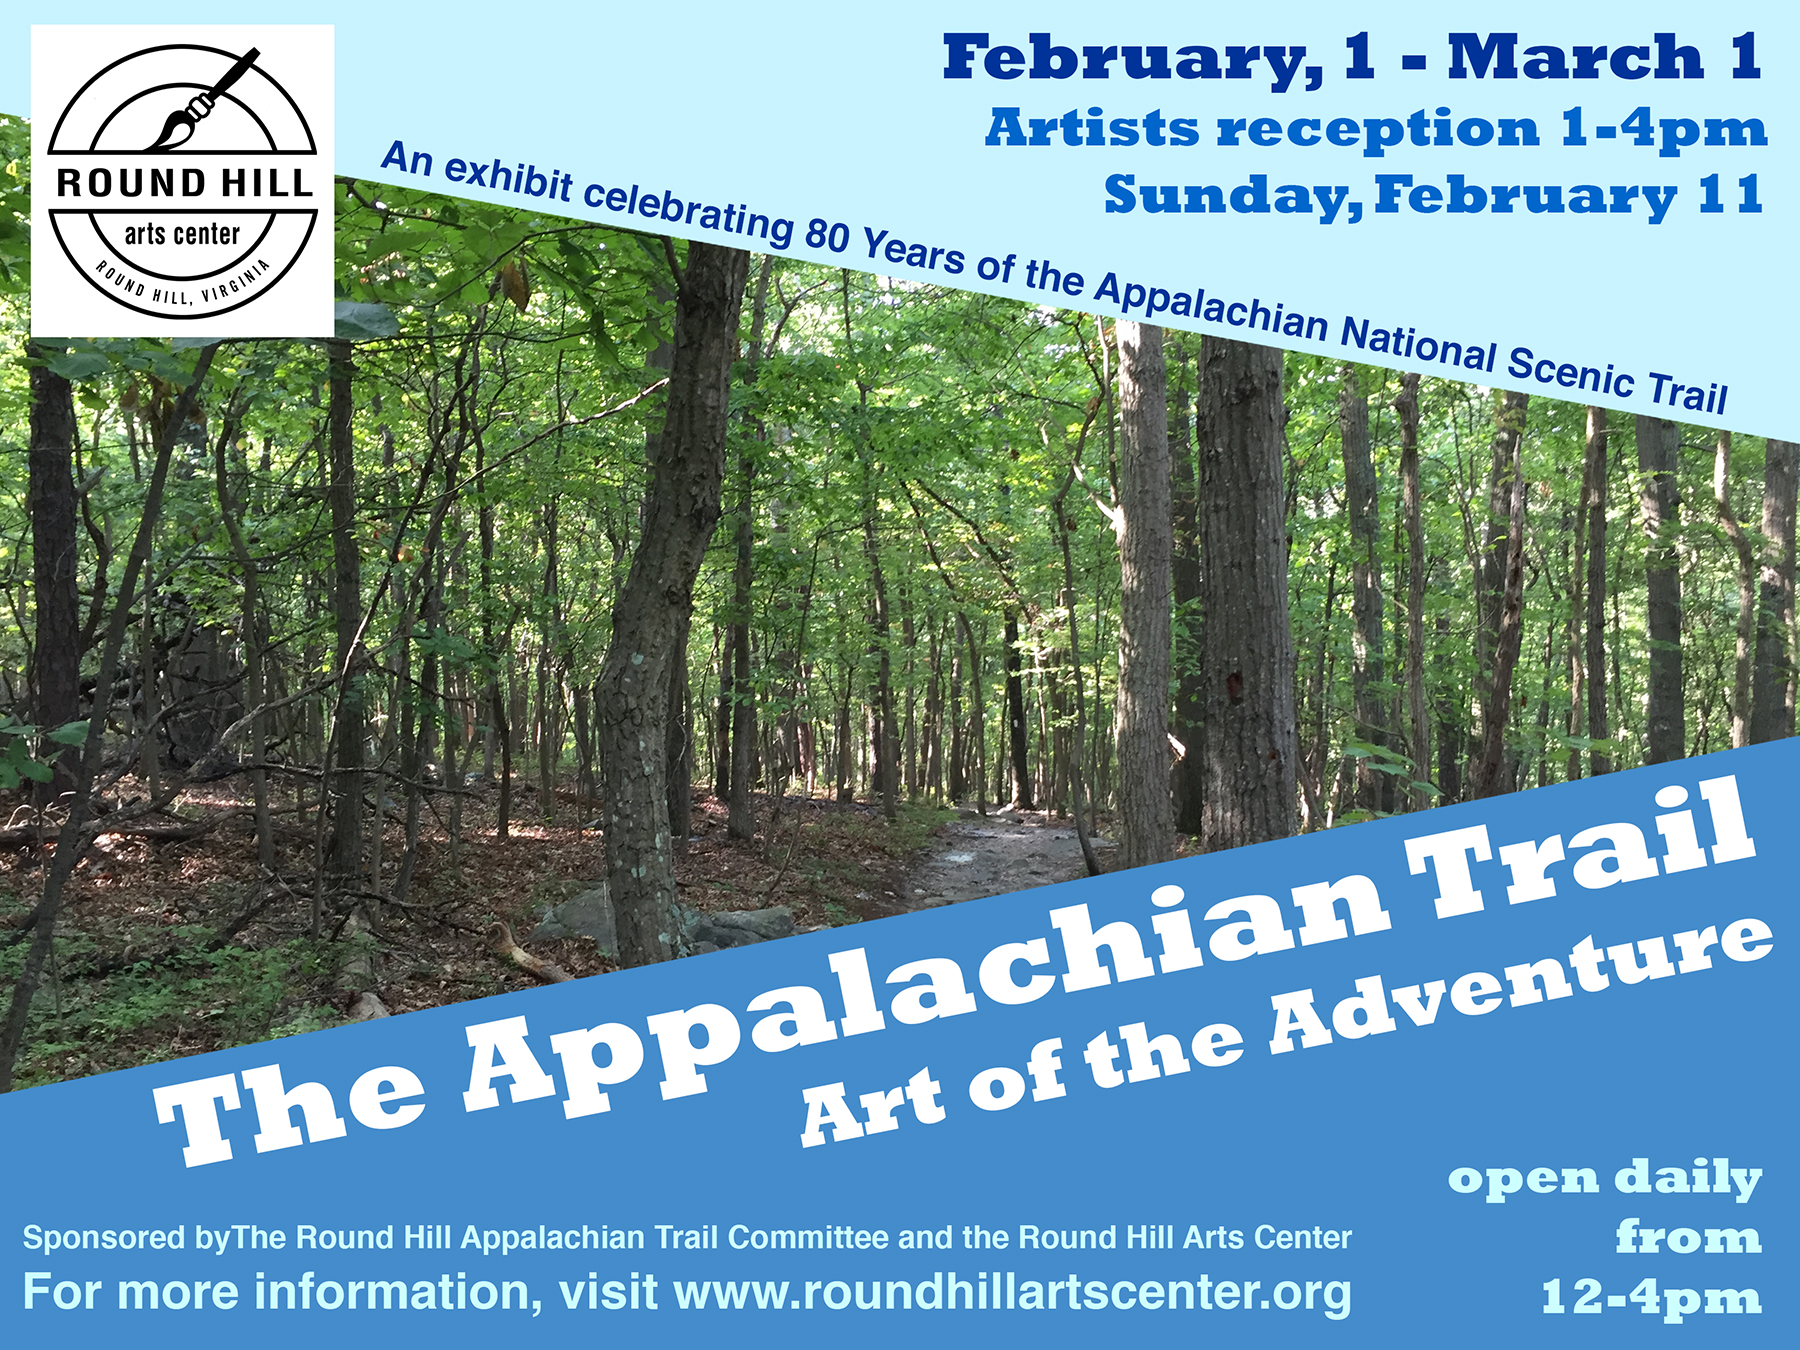 Appalachian Trail: Art of Adventure Exhibition